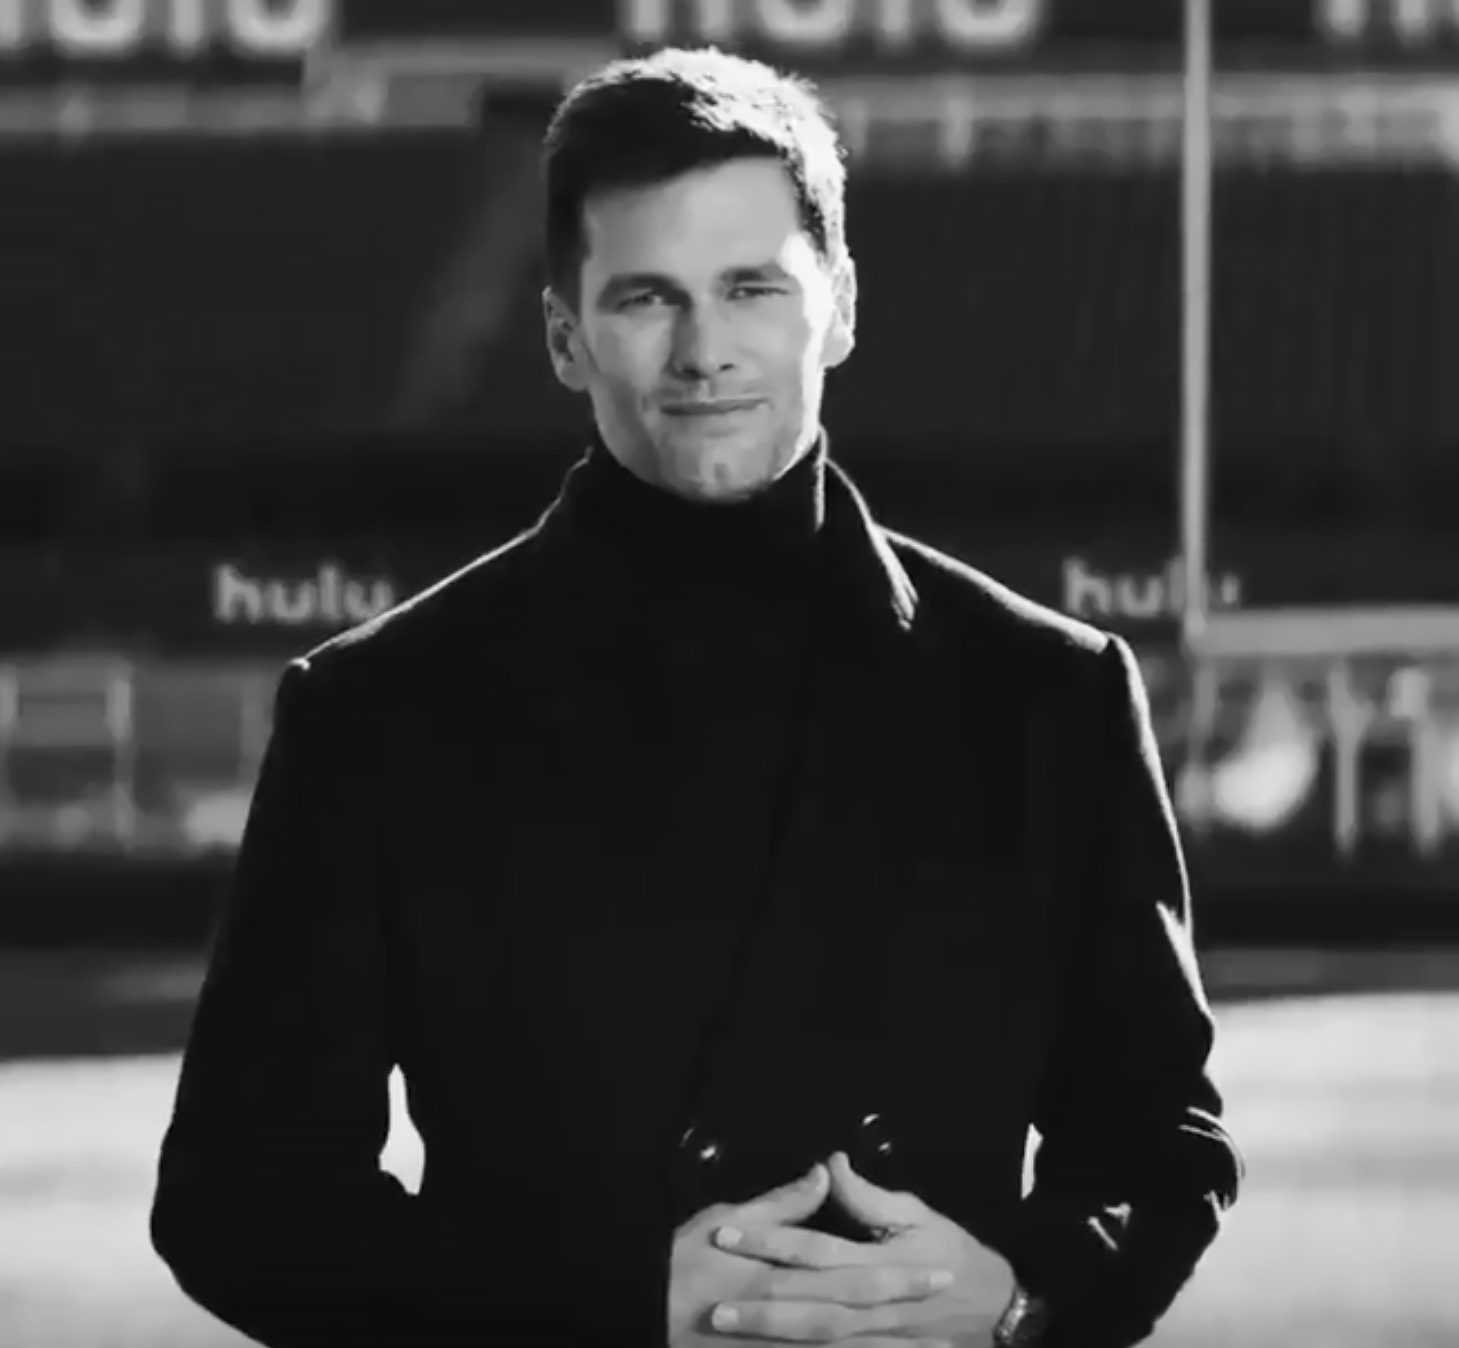 Tom Brady Assures Fans He's 'Not Going Anywhere' in Hulu Super Bowl 2020 Ad After Retirement Rumors